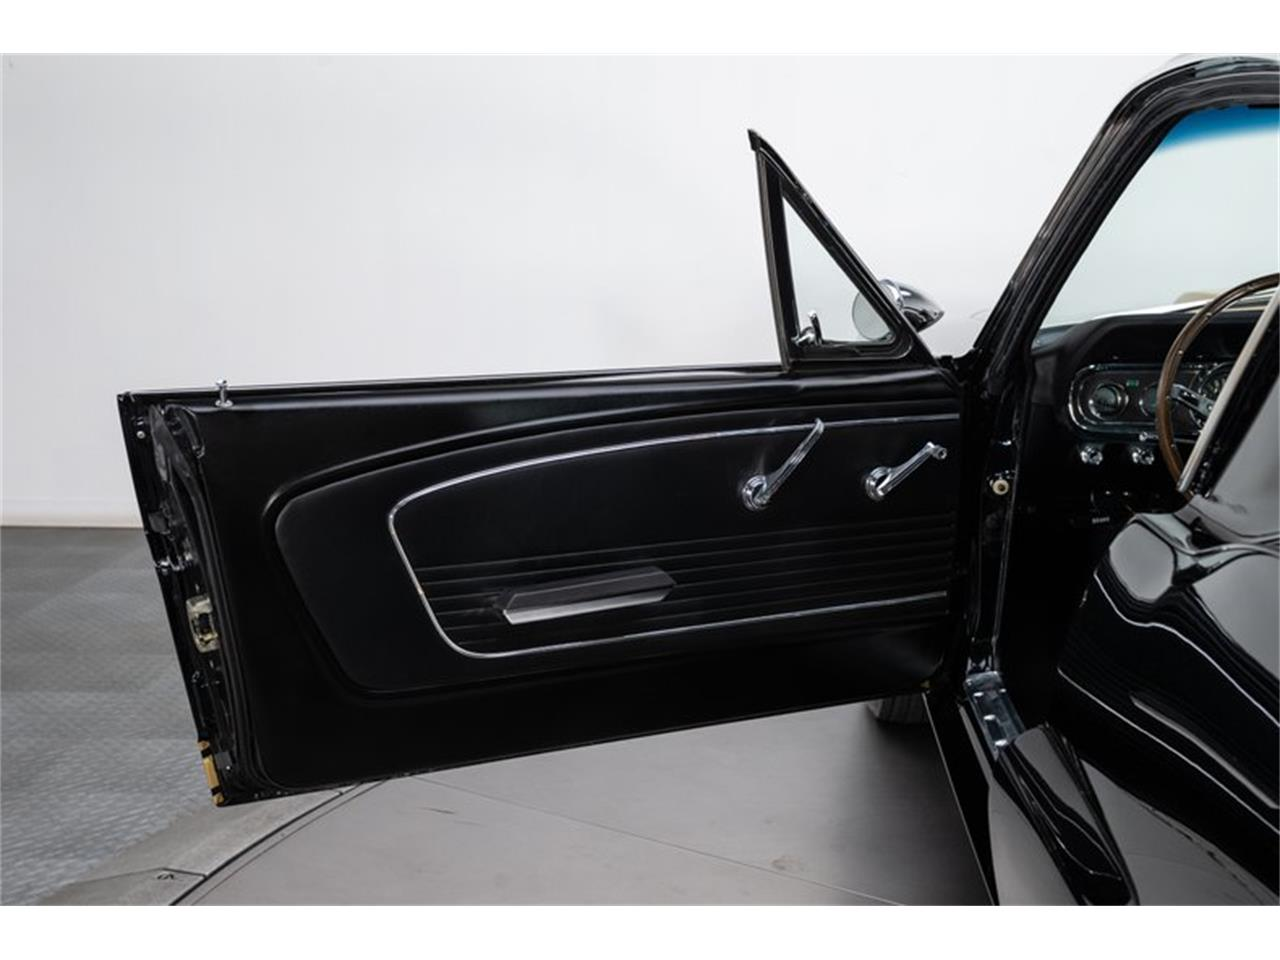 Large Picture of Classic '66 Mustang located in Charlotte North Carolina - $189,900.00 - Q2WU